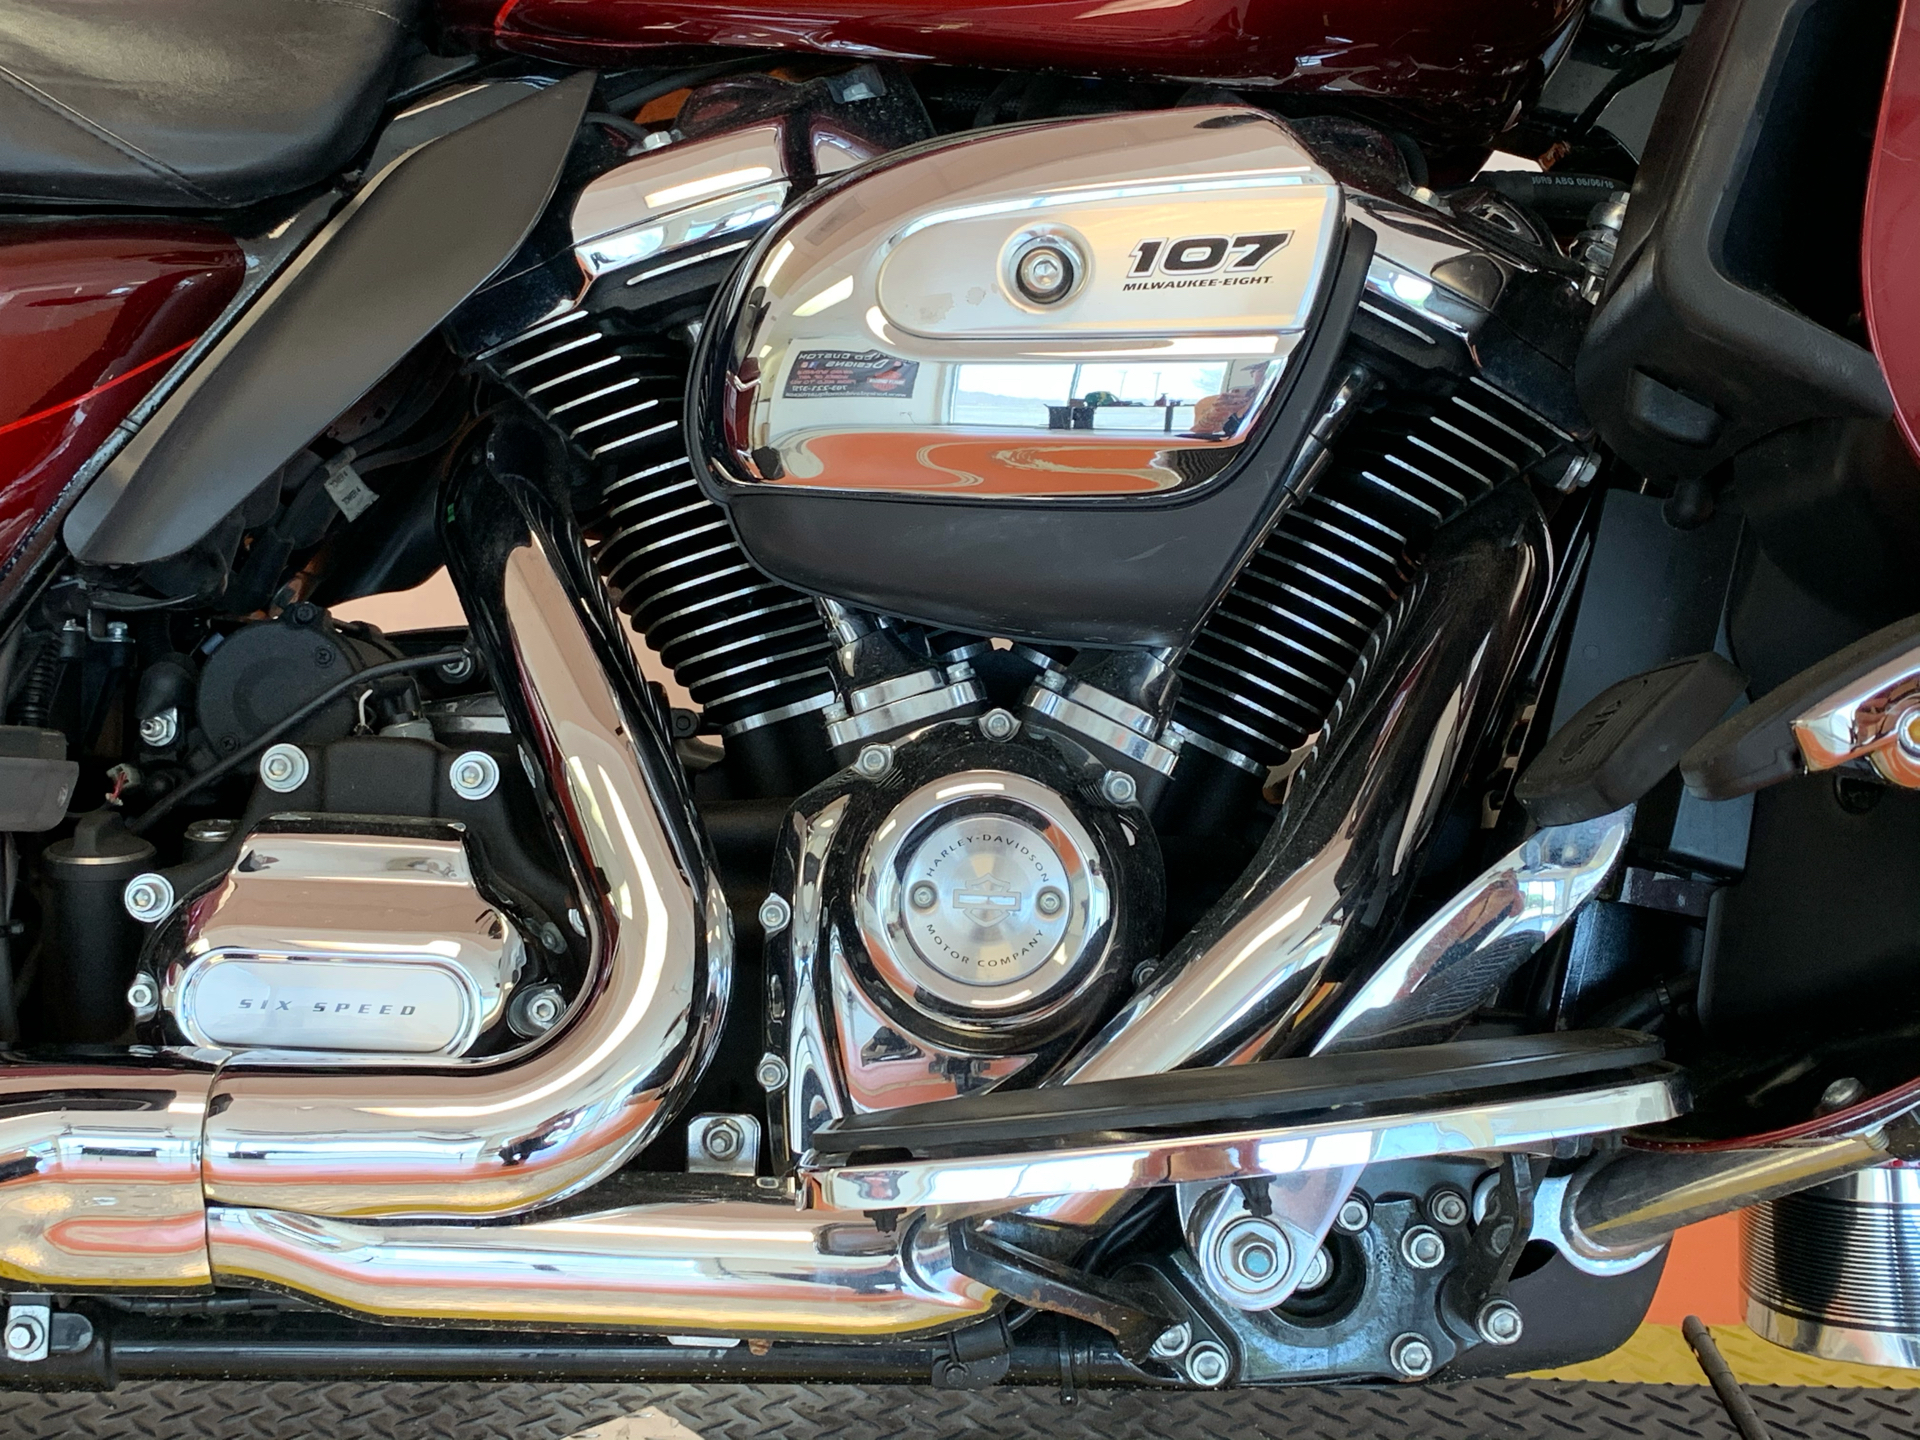 2017 Harley-Davidson Ultra Limited in Dumfries, Virginia - Photo 6